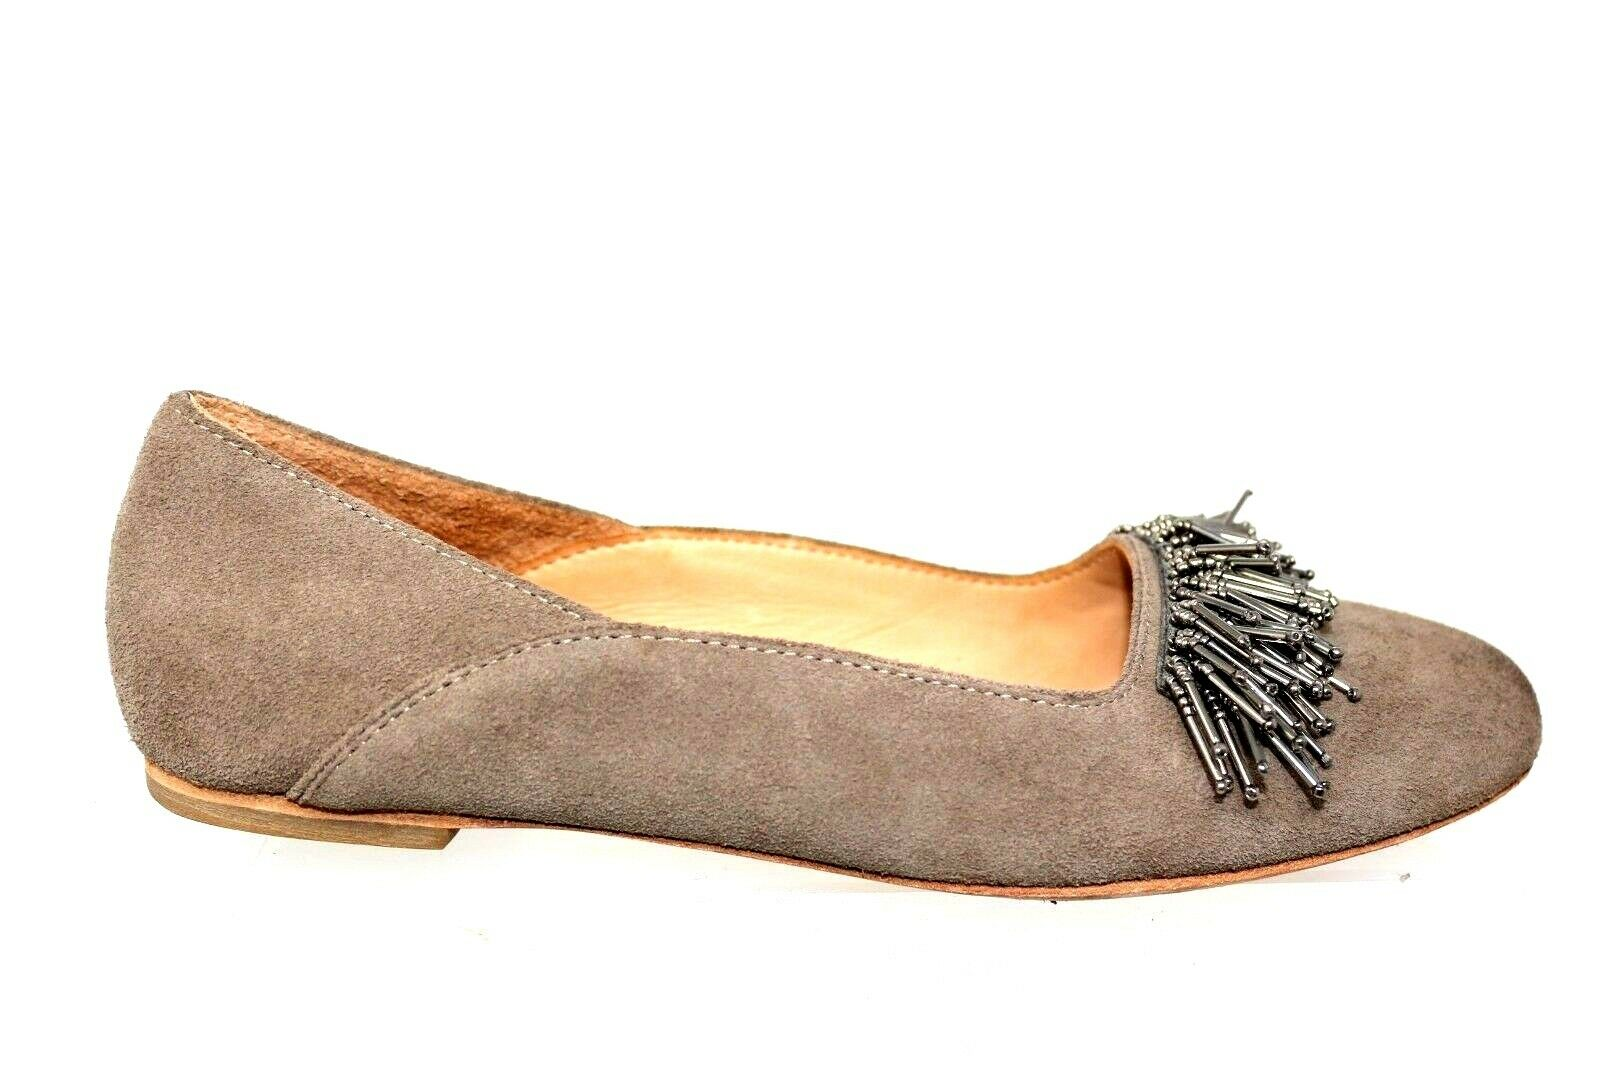 Bill Blass Taupe Suede Silver Fringe Beaded Front Slip On Flat shoes Womens 7.5